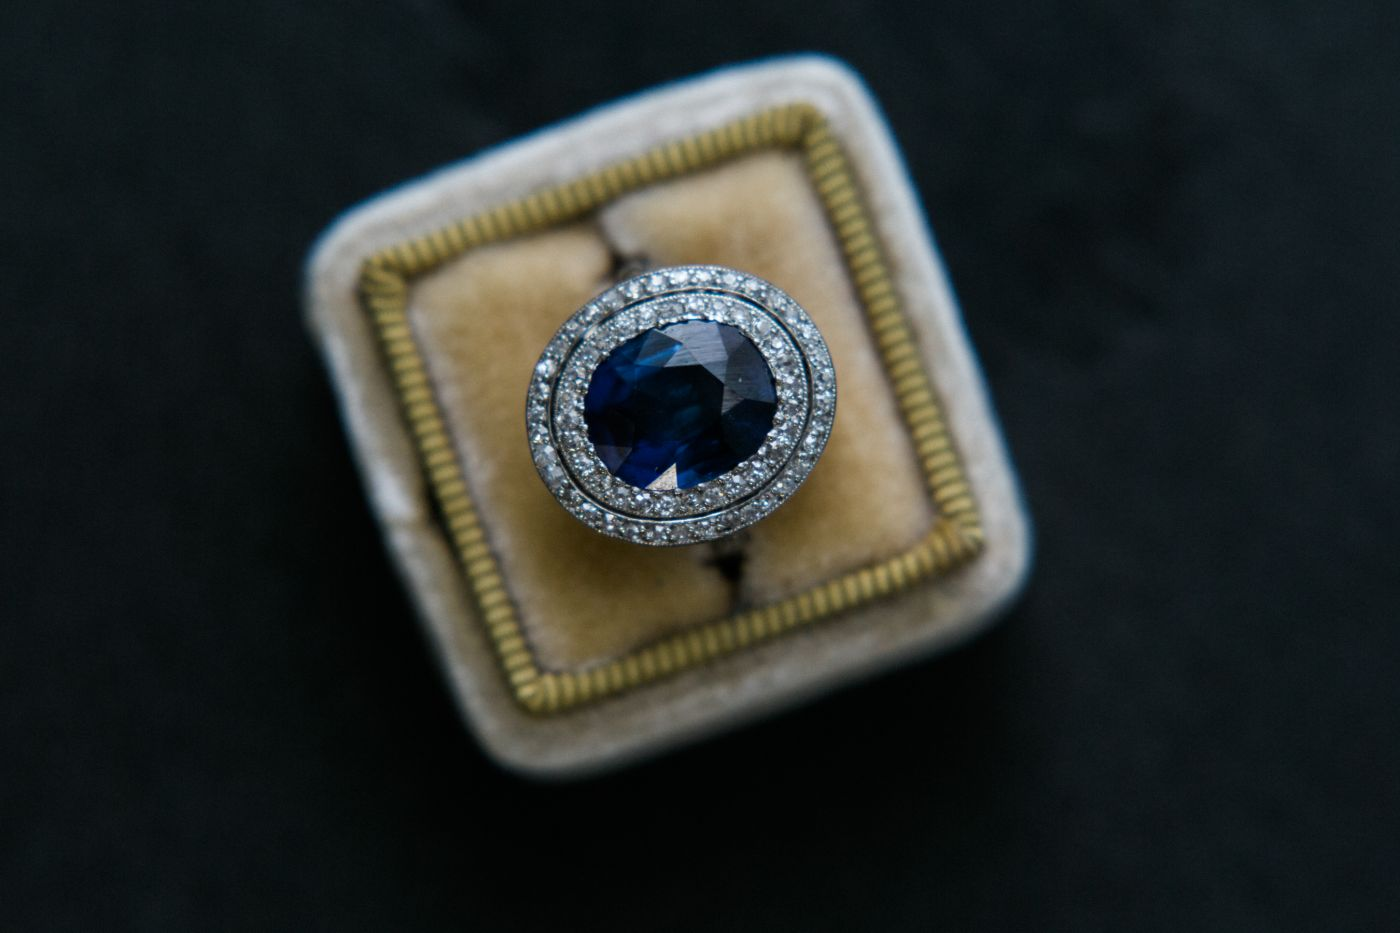 Provence, Edwardian (belle epoch era), French hallmarks, 4.85ct unheated sapphire.